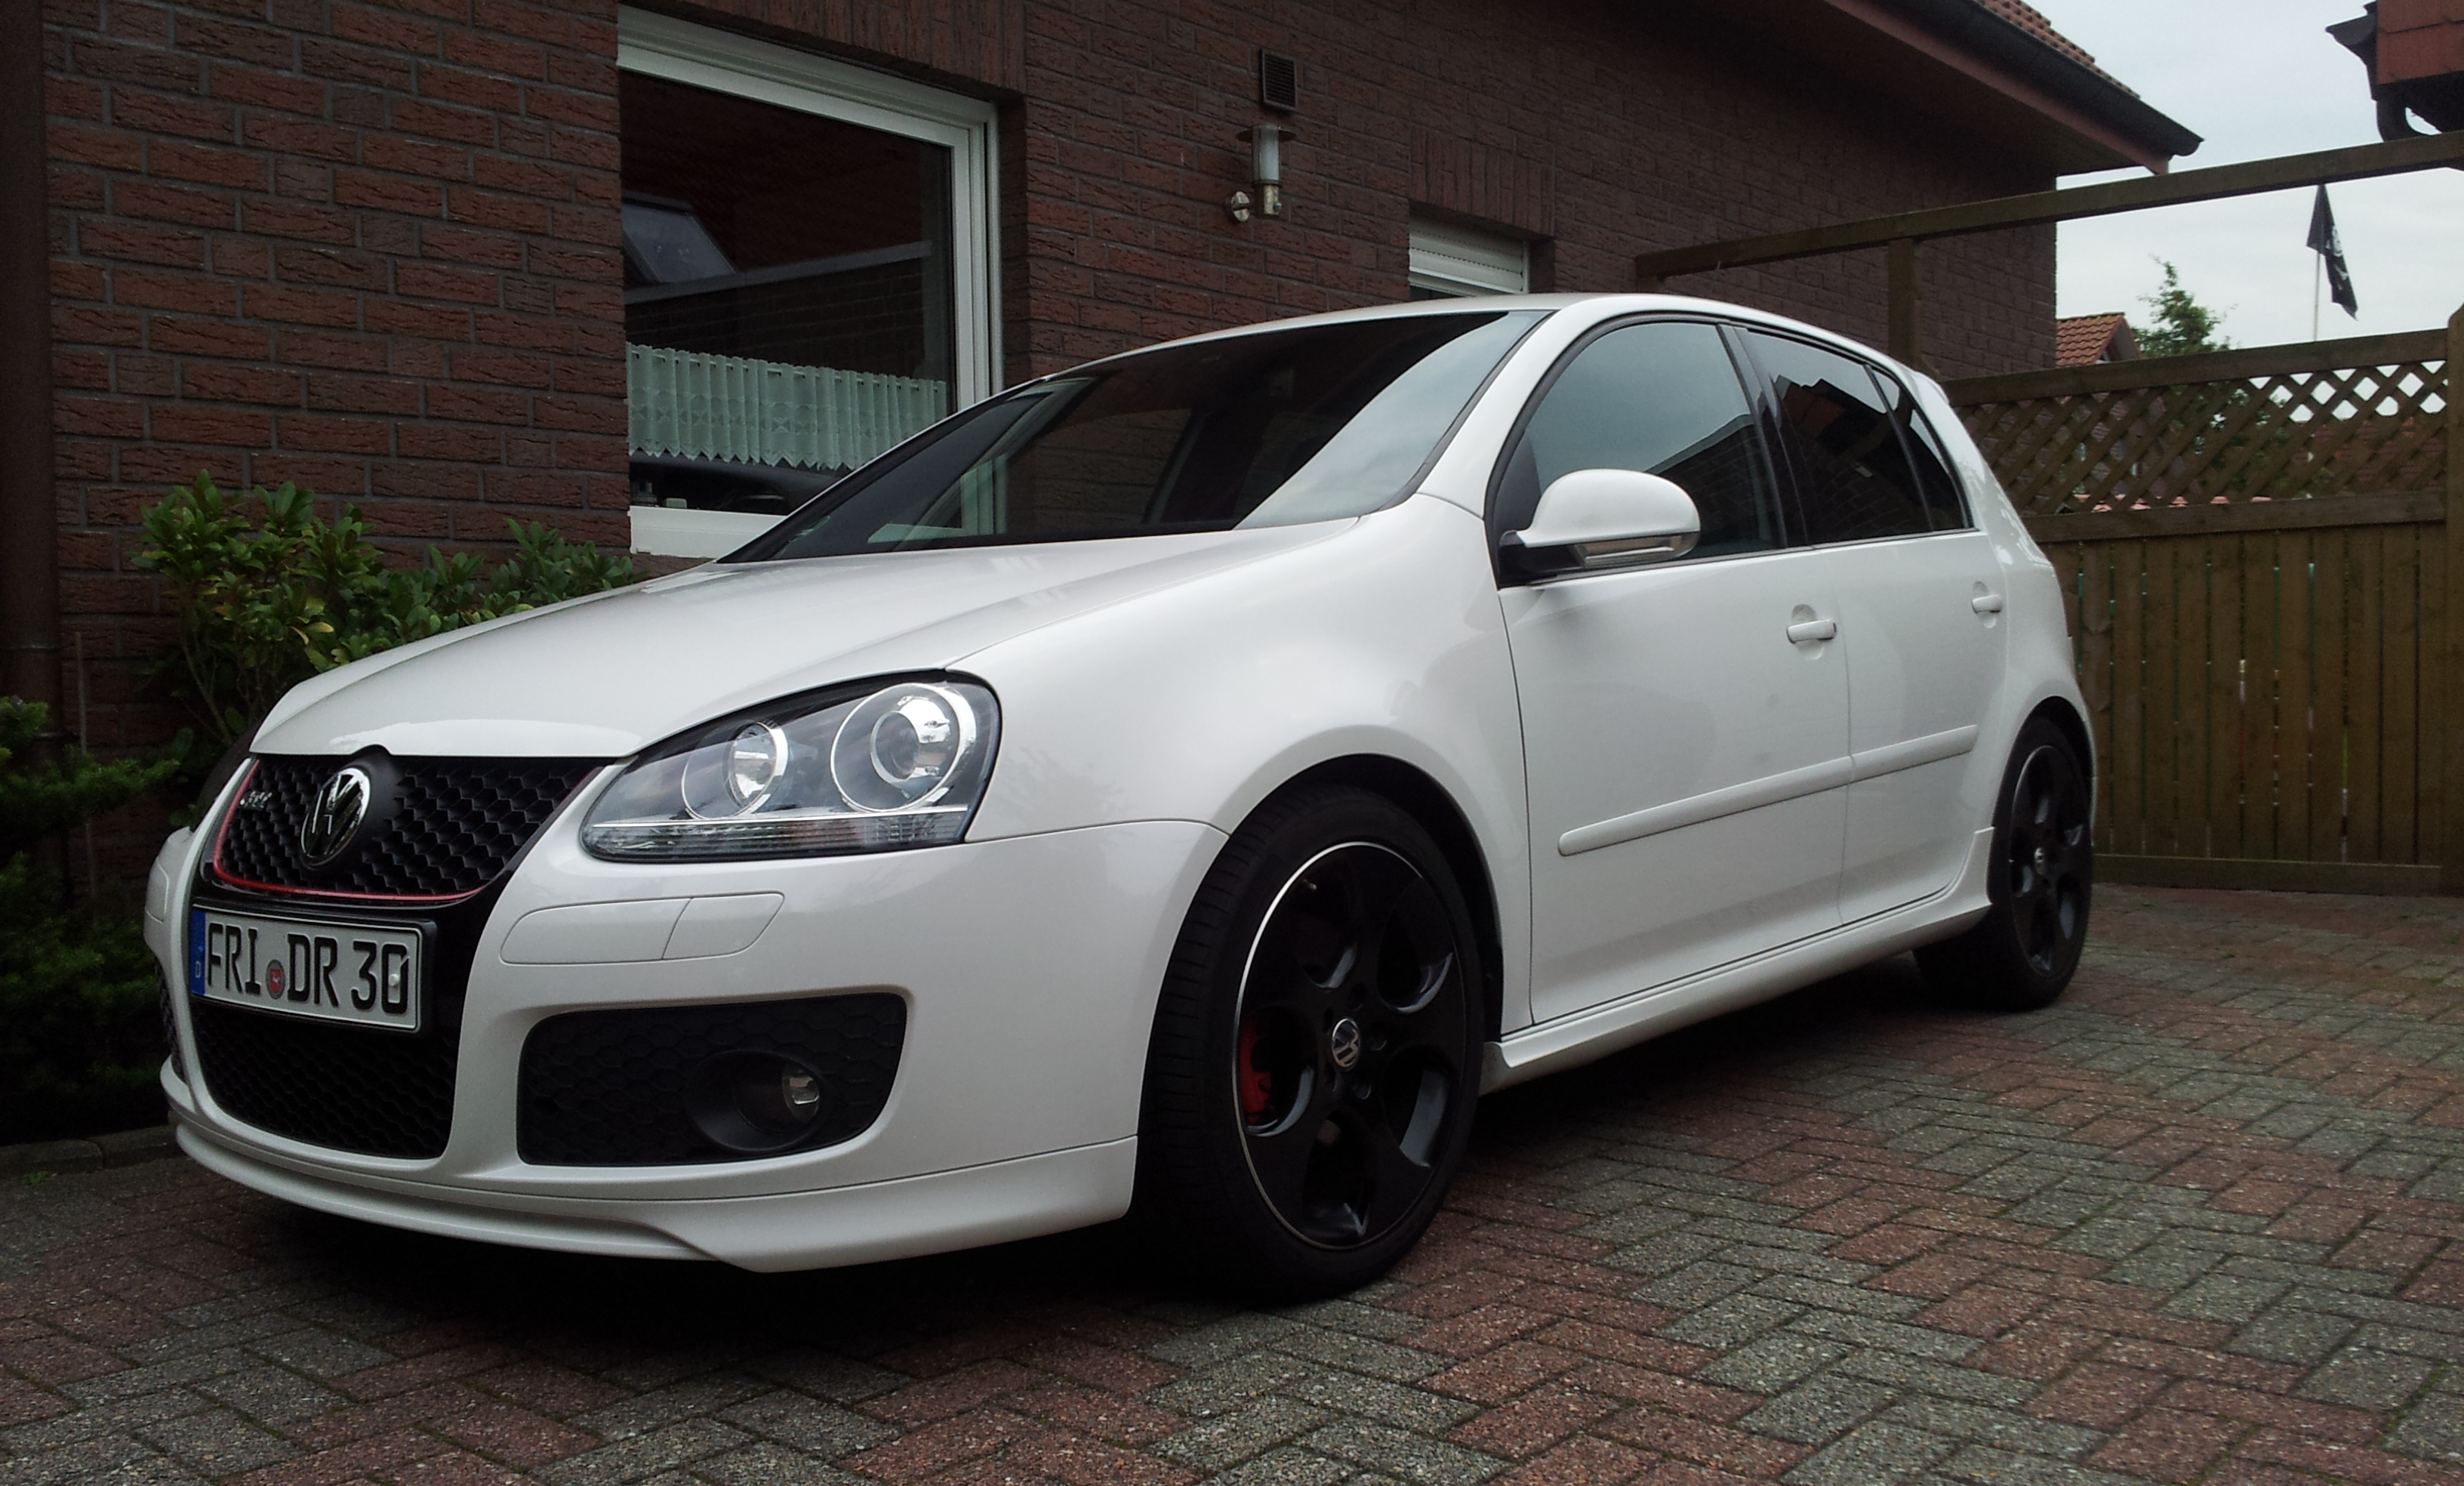 2006 volkswagen golf gti edition 30 dsg related infomation specifications weili automotive network. Black Bedroom Furniture Sets. Home Design Ideas